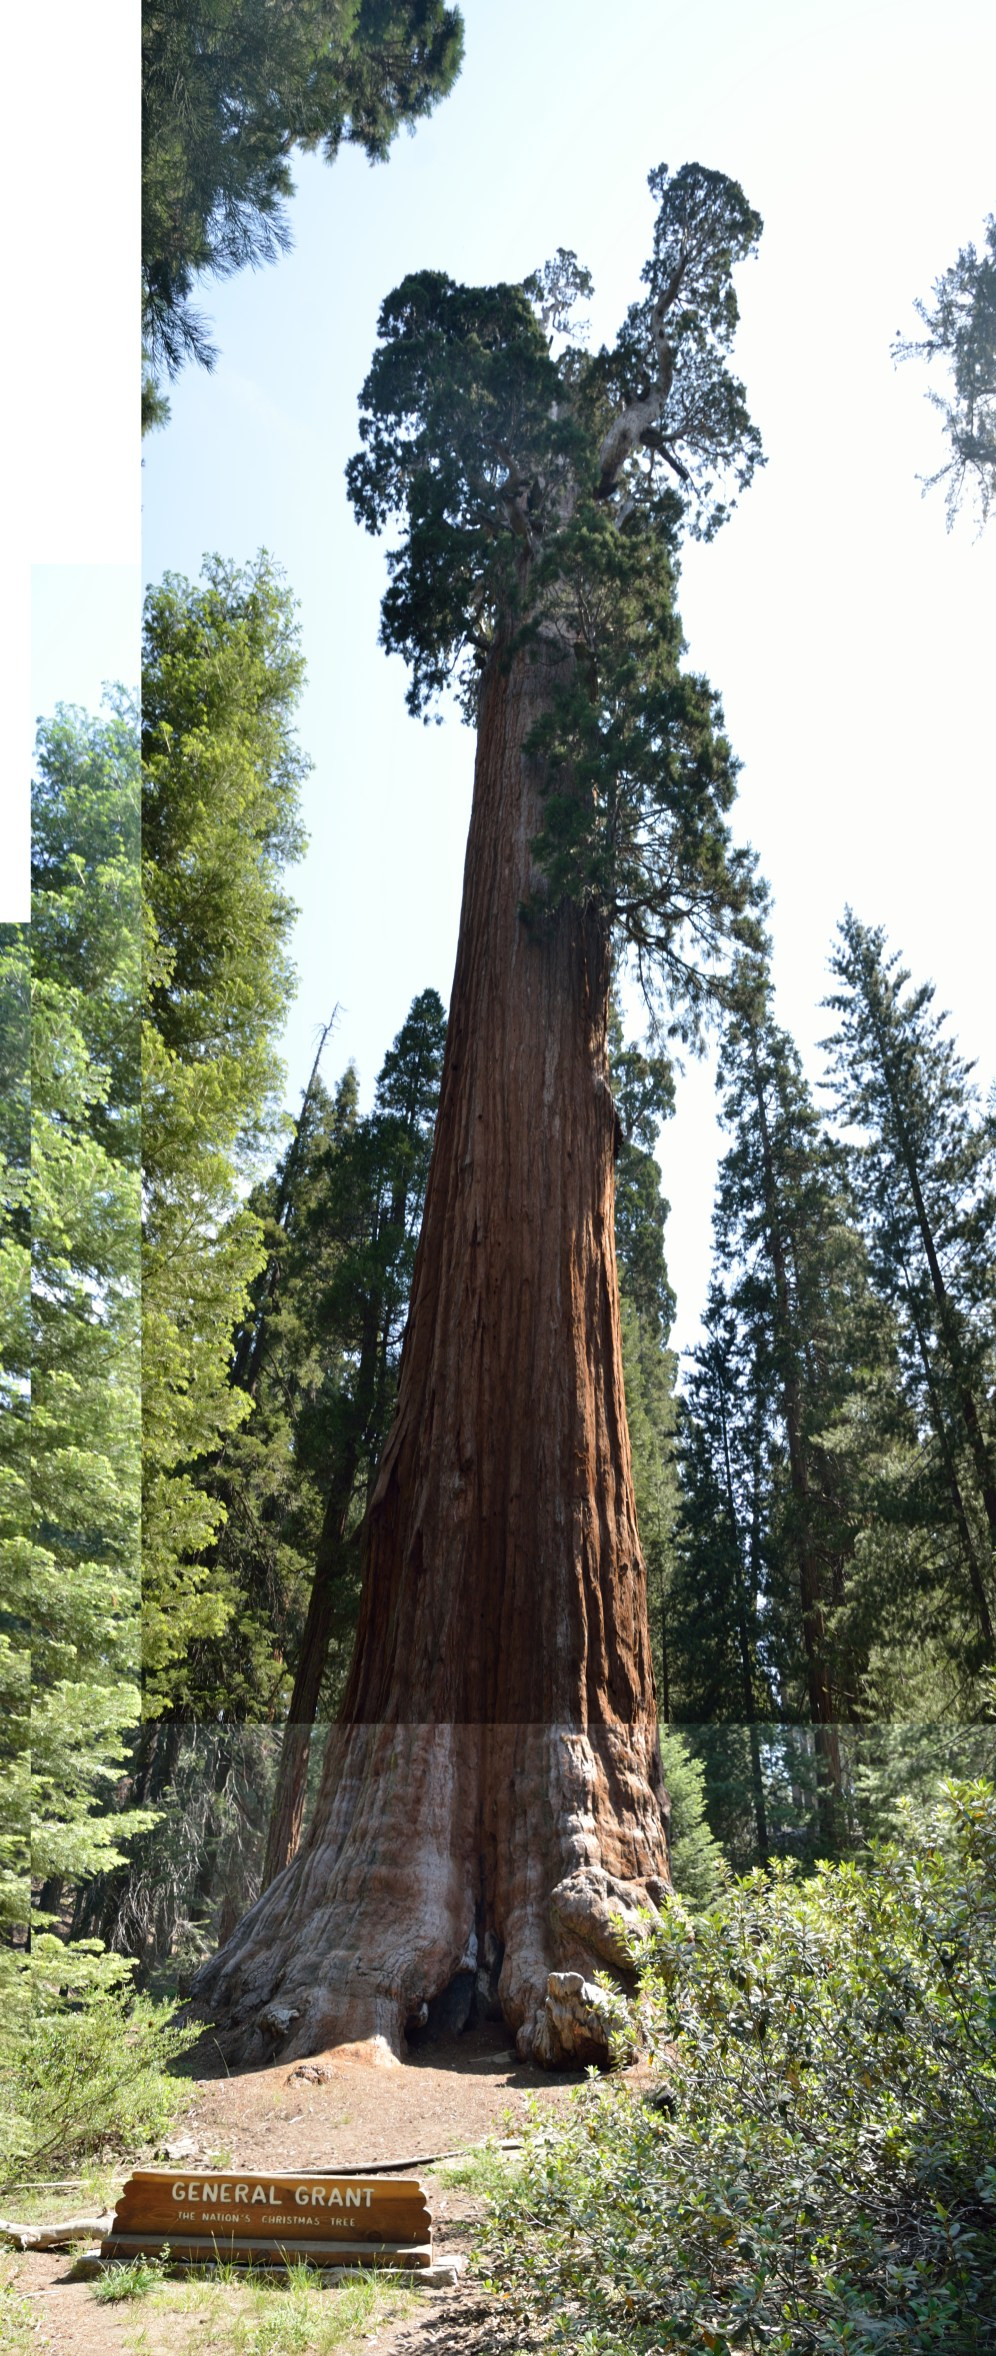 A composite image of the General Grant tree. 267' tall.